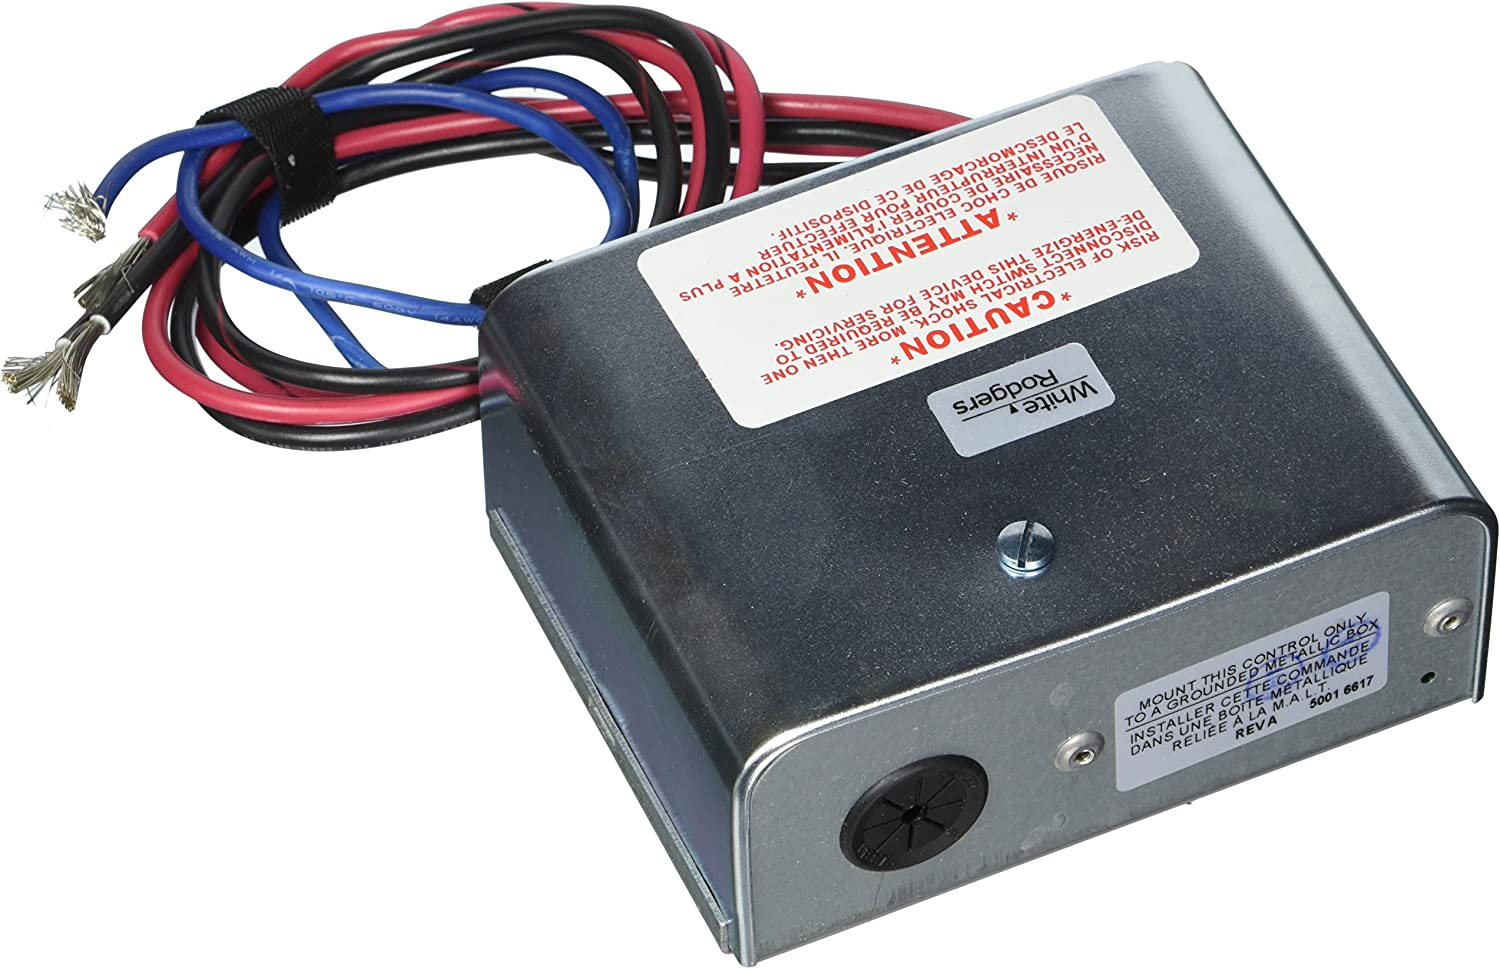 White Rodgers 24A06G-1 Dual Level Temperatur Control System